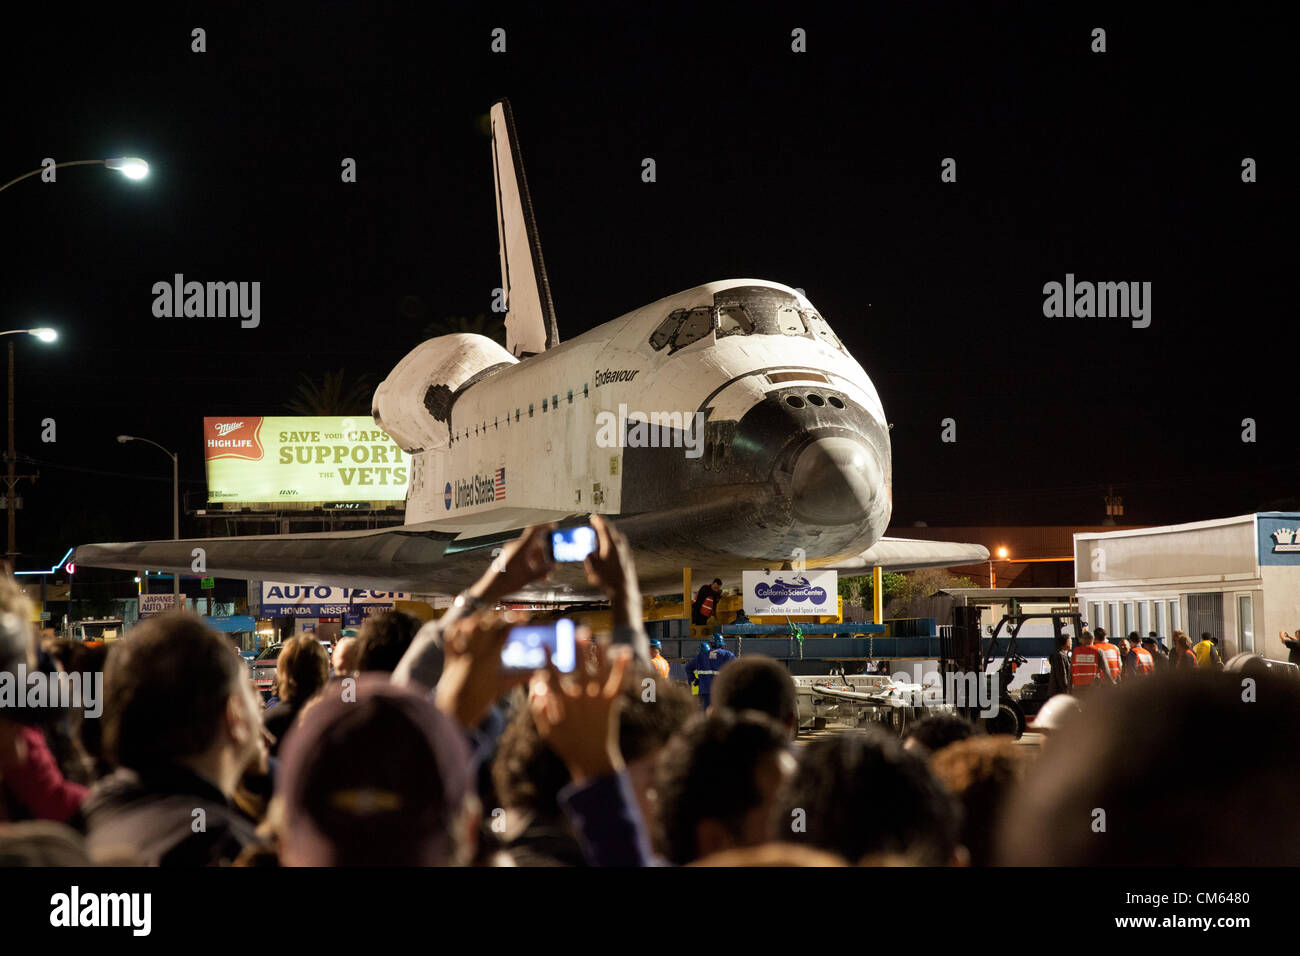 Inglewood, Los Angeles, CA, USA- 12 October, 2012 - The Space Shuttle Endeavour is towed through the streets of Los Angeles on its way to its permanent home at the California Science Center, making a nighttime stop at La Cienega and Manchester Blvd where a Toyota Tundra truck will replace the heavier transport to tow it across the bridge over the 405 Freeway. The Shuttle was decommissioned in 2011 when the NASA space program was discontinued. Stock Photo